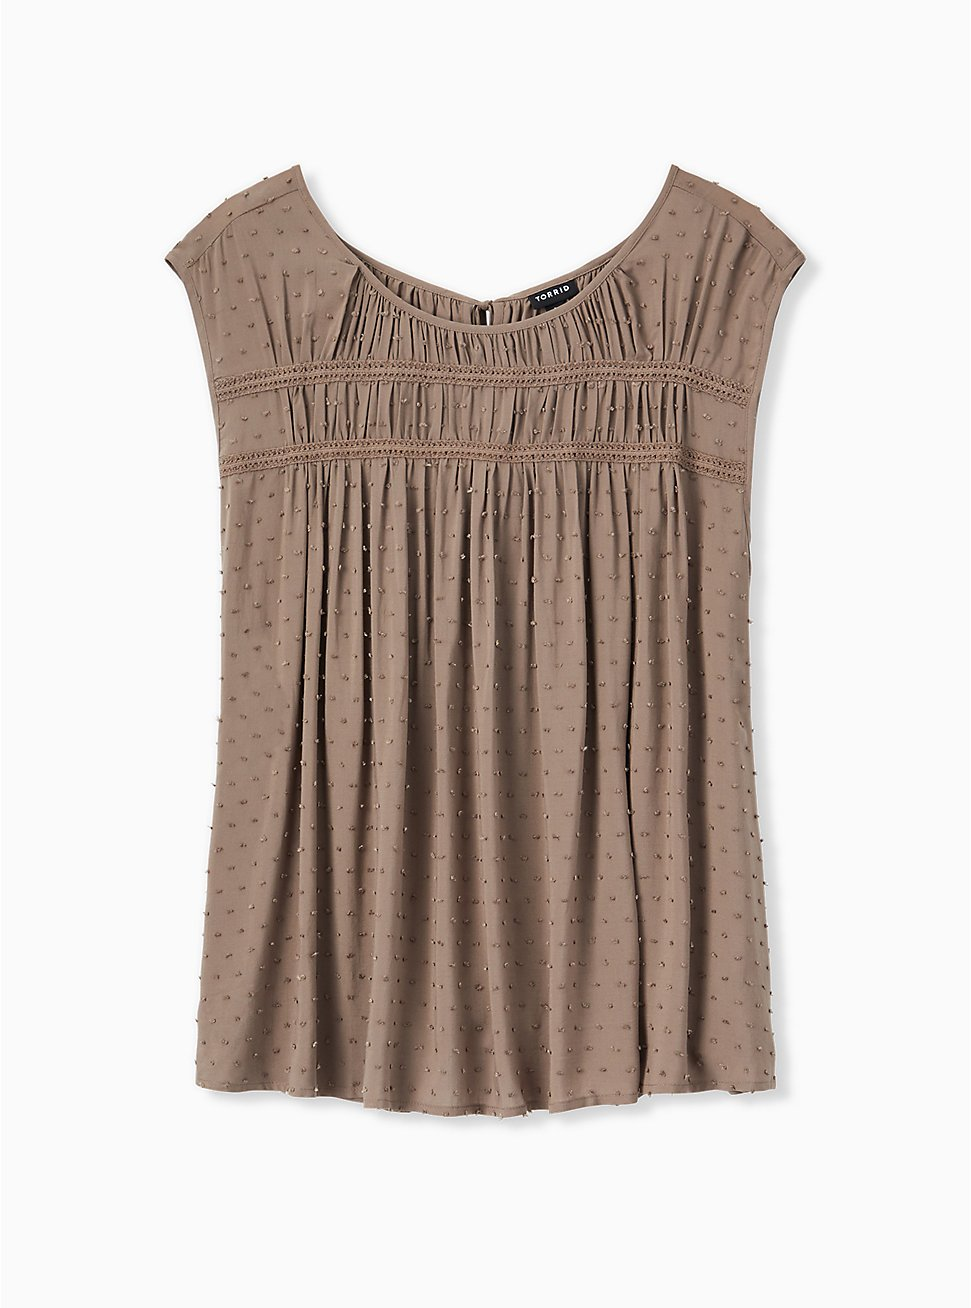 Dark Taupe Swiss Dot Crochet Inset Top, FALCON, hi-res